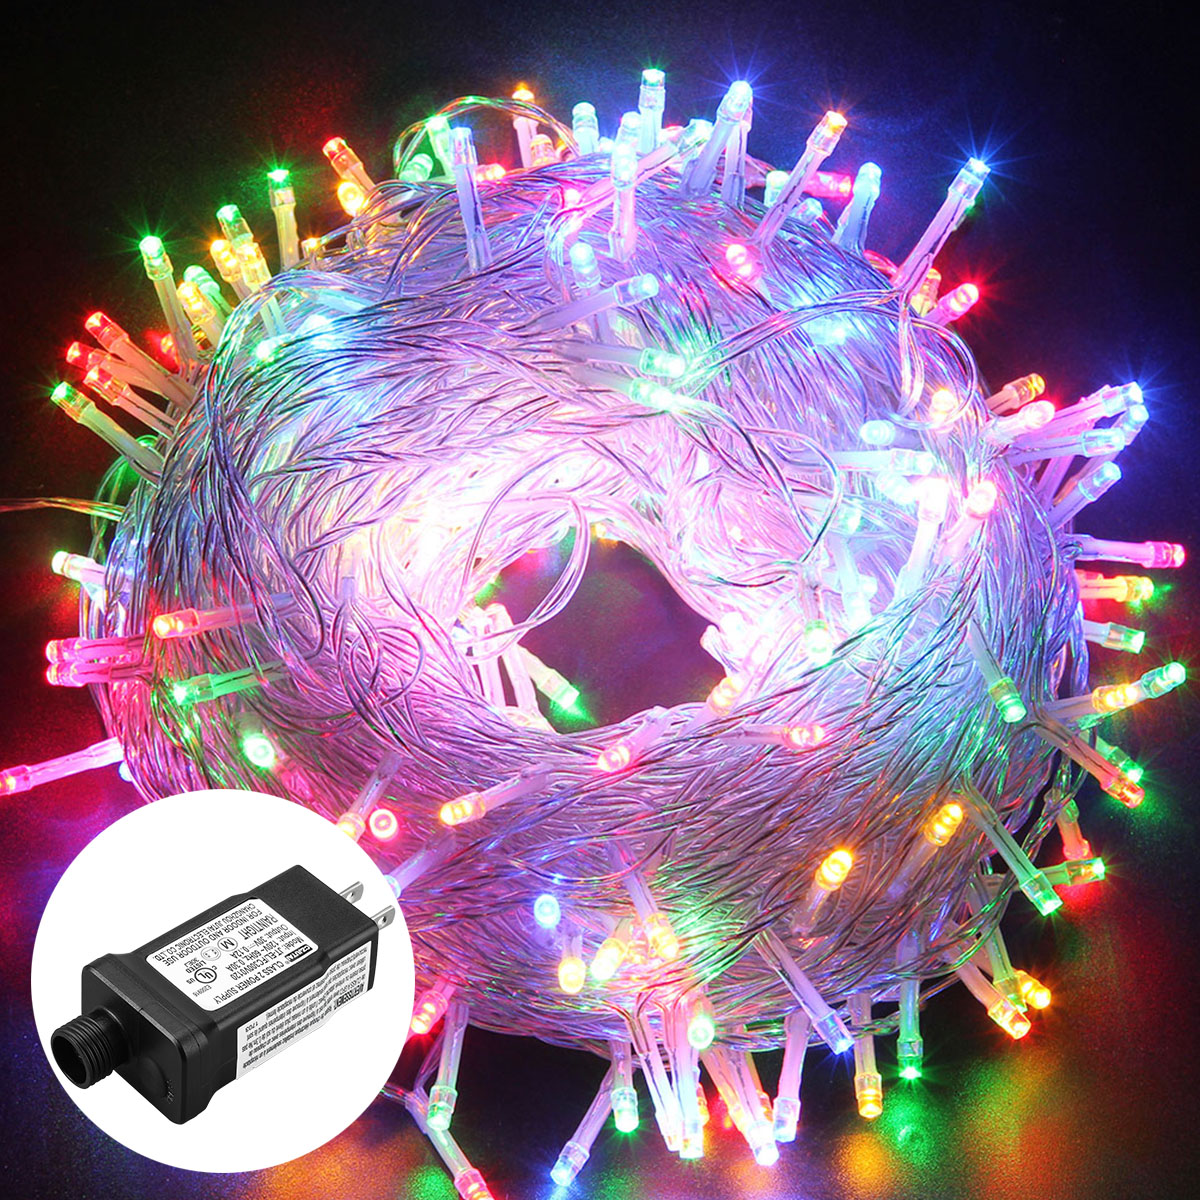 Christmas Outdoor Decor 50m Multi Color String 250 Led Light Party